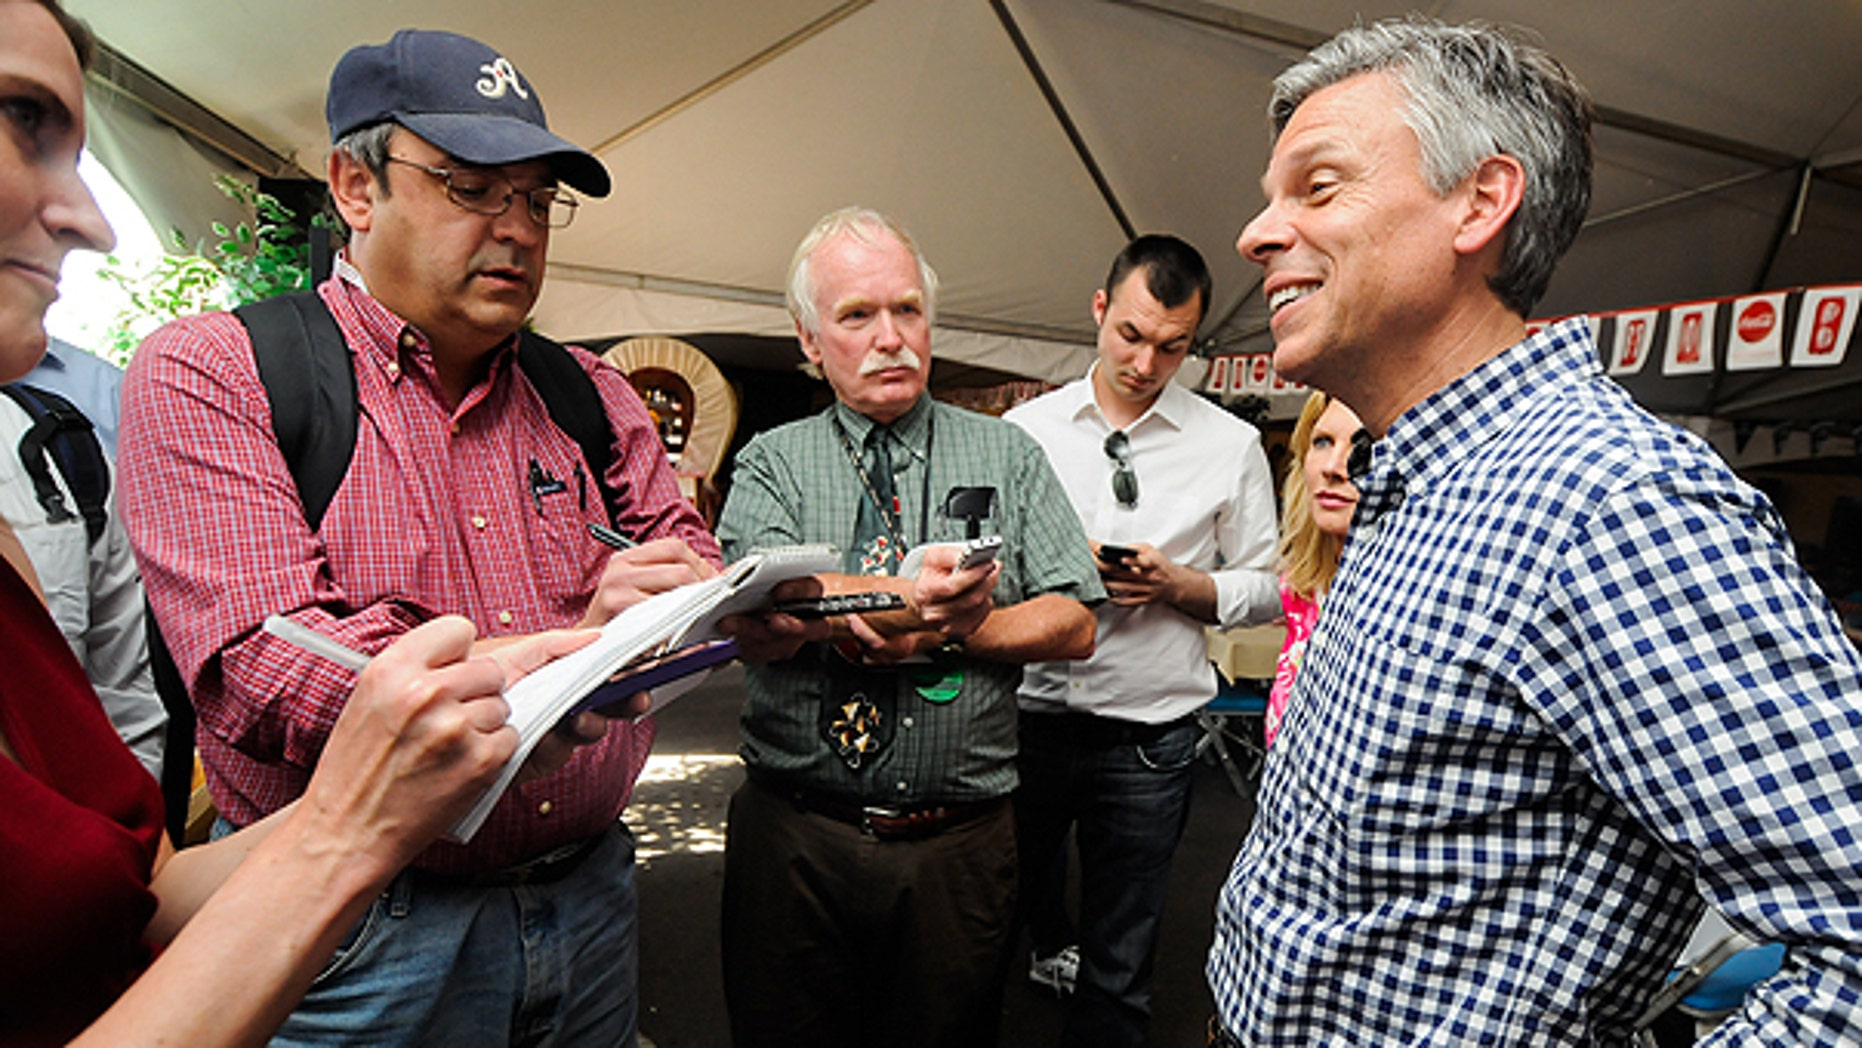 June 24: Former Utah Gov. Jon Huntsman talks to the media during a campaign stop at the Reno Rodeo in Reno, Nev.